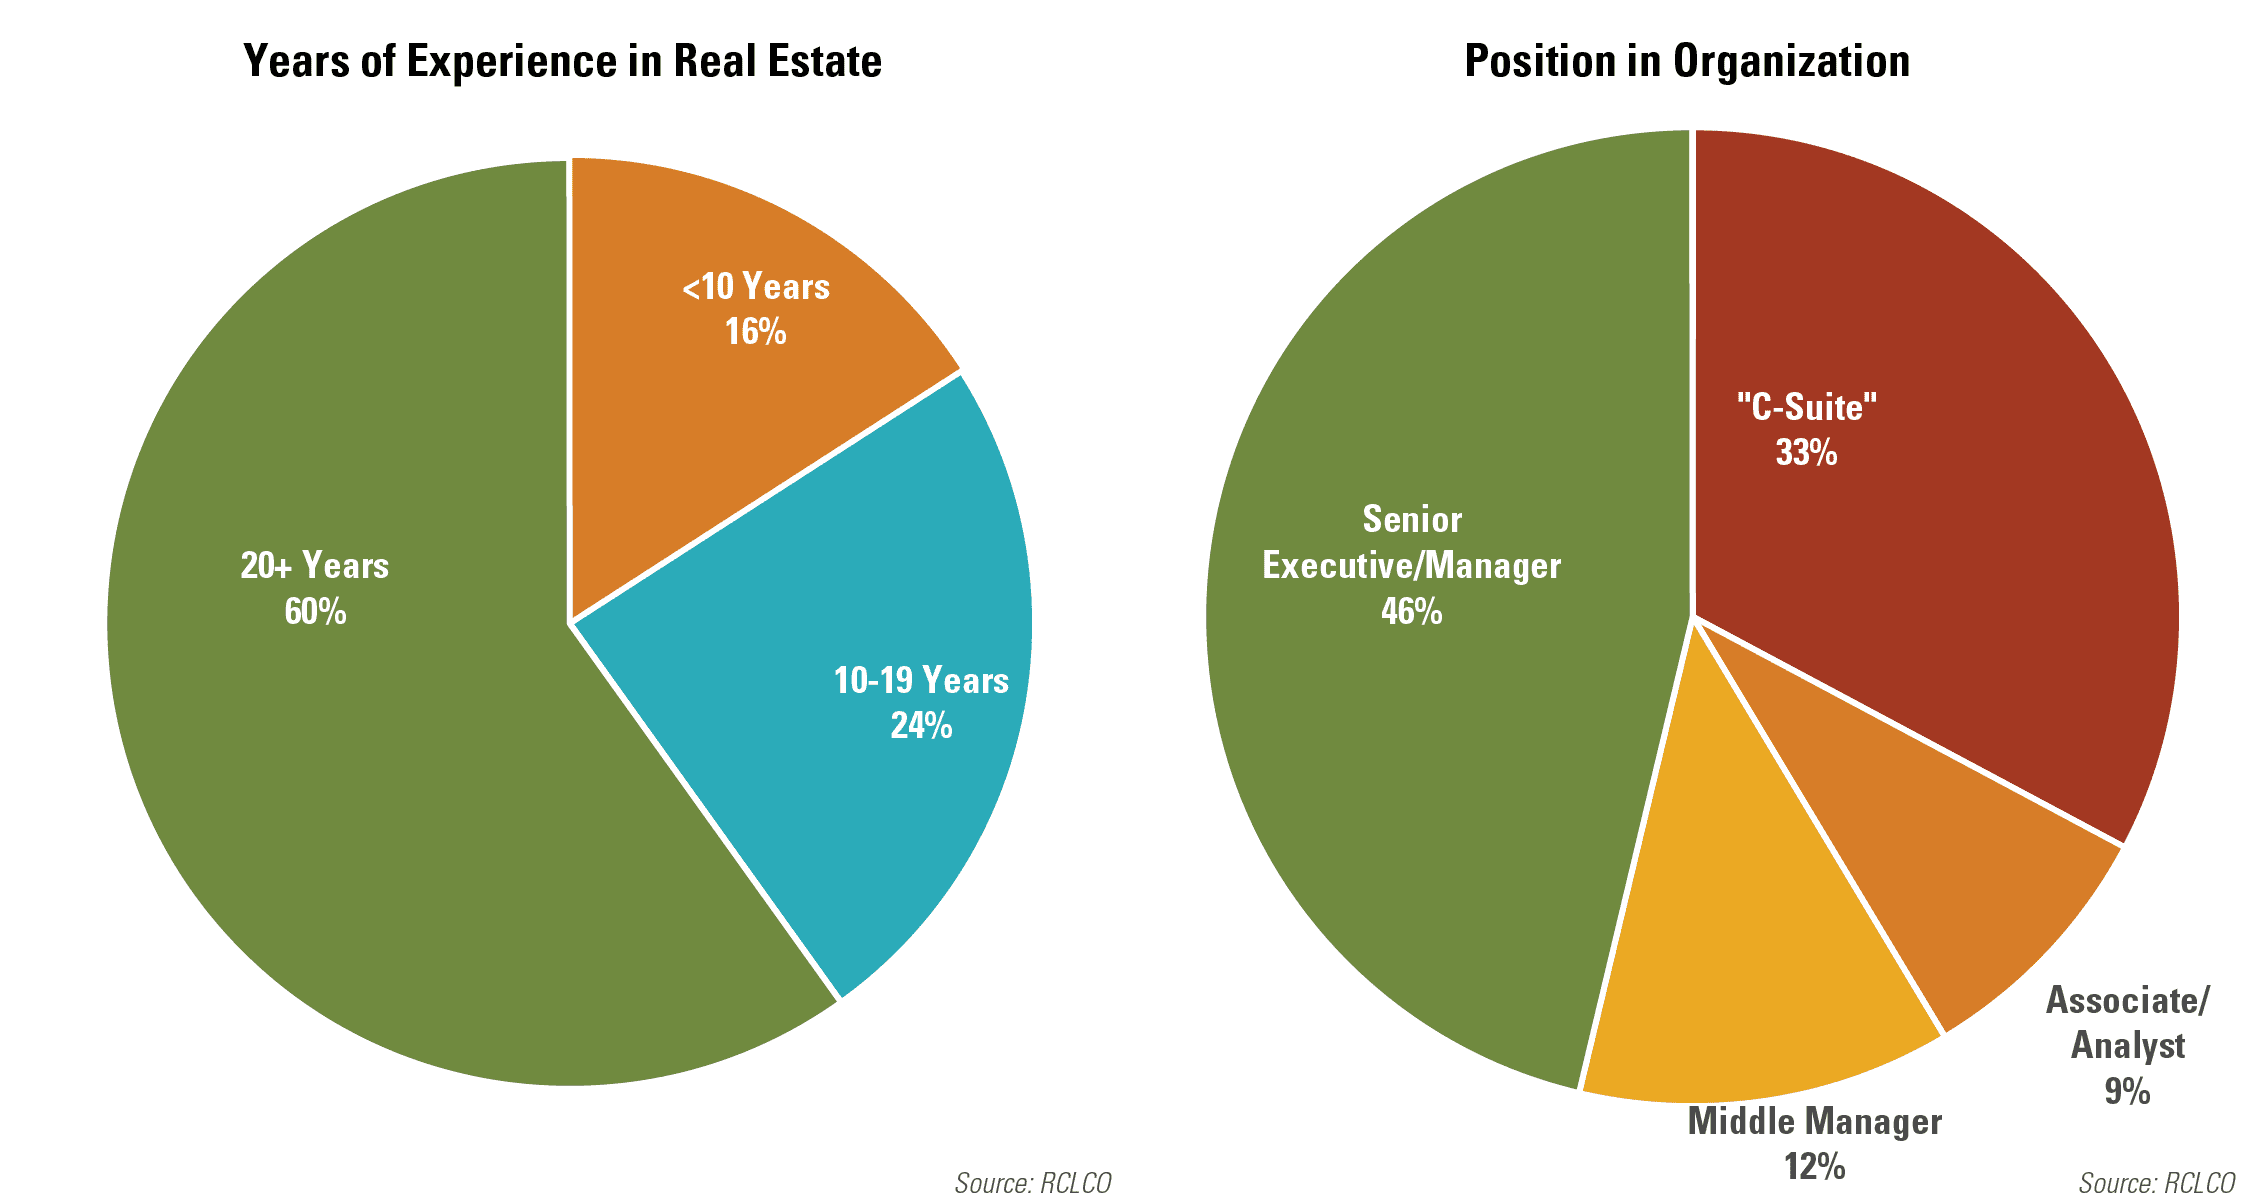 Years of Experience in Real Estate